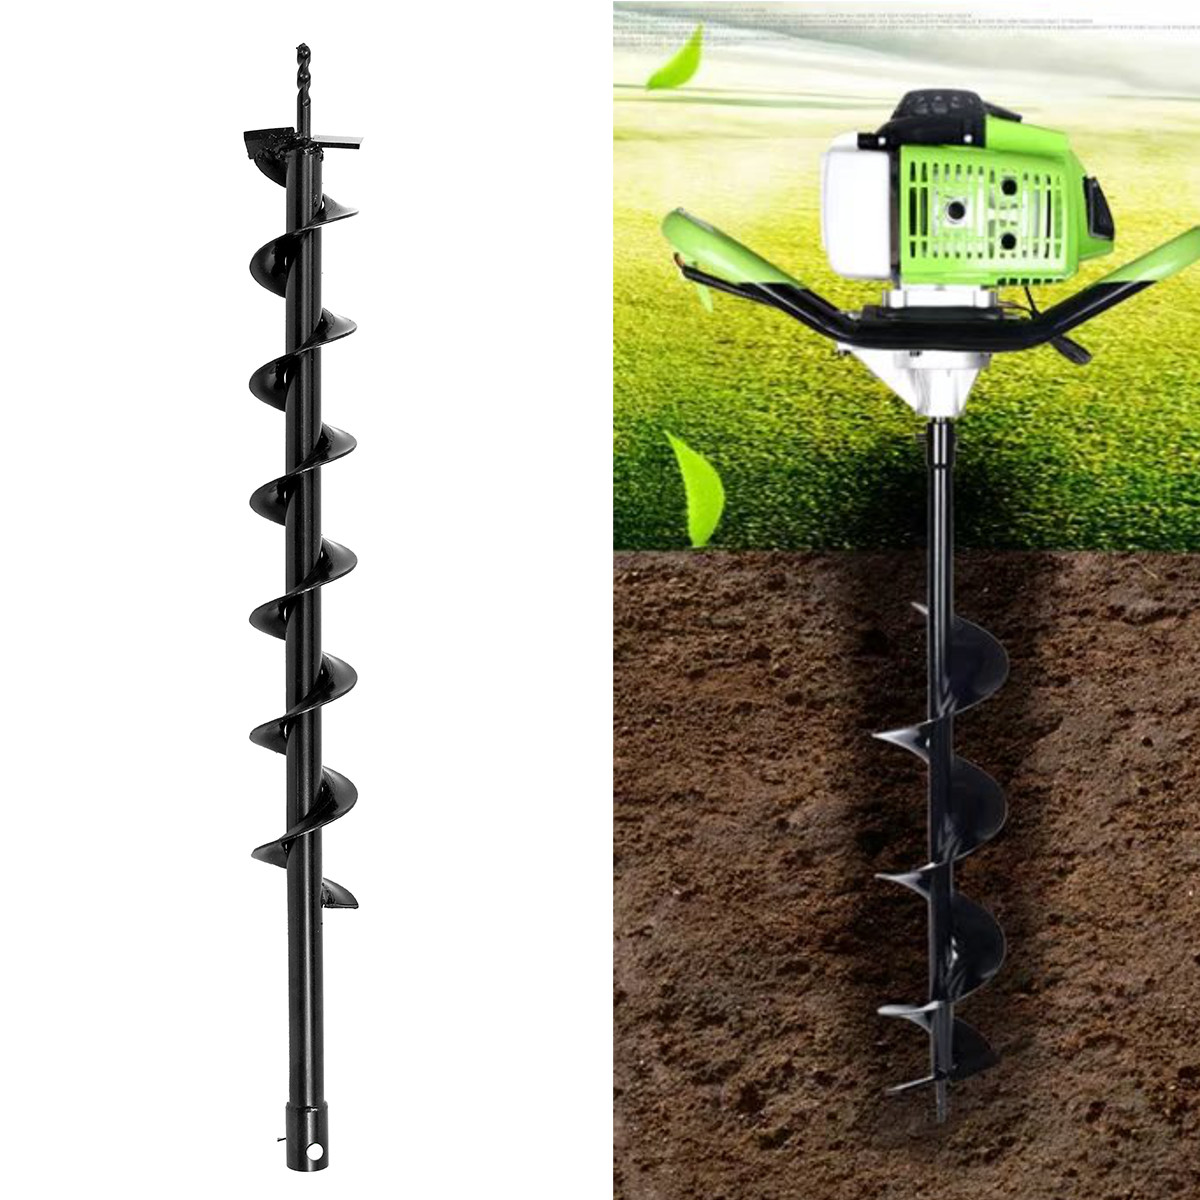 Steel Earth Auger Drill Bit Fence Borer Garden Petrol Post Hole Digger Tool Ground Drill Machine